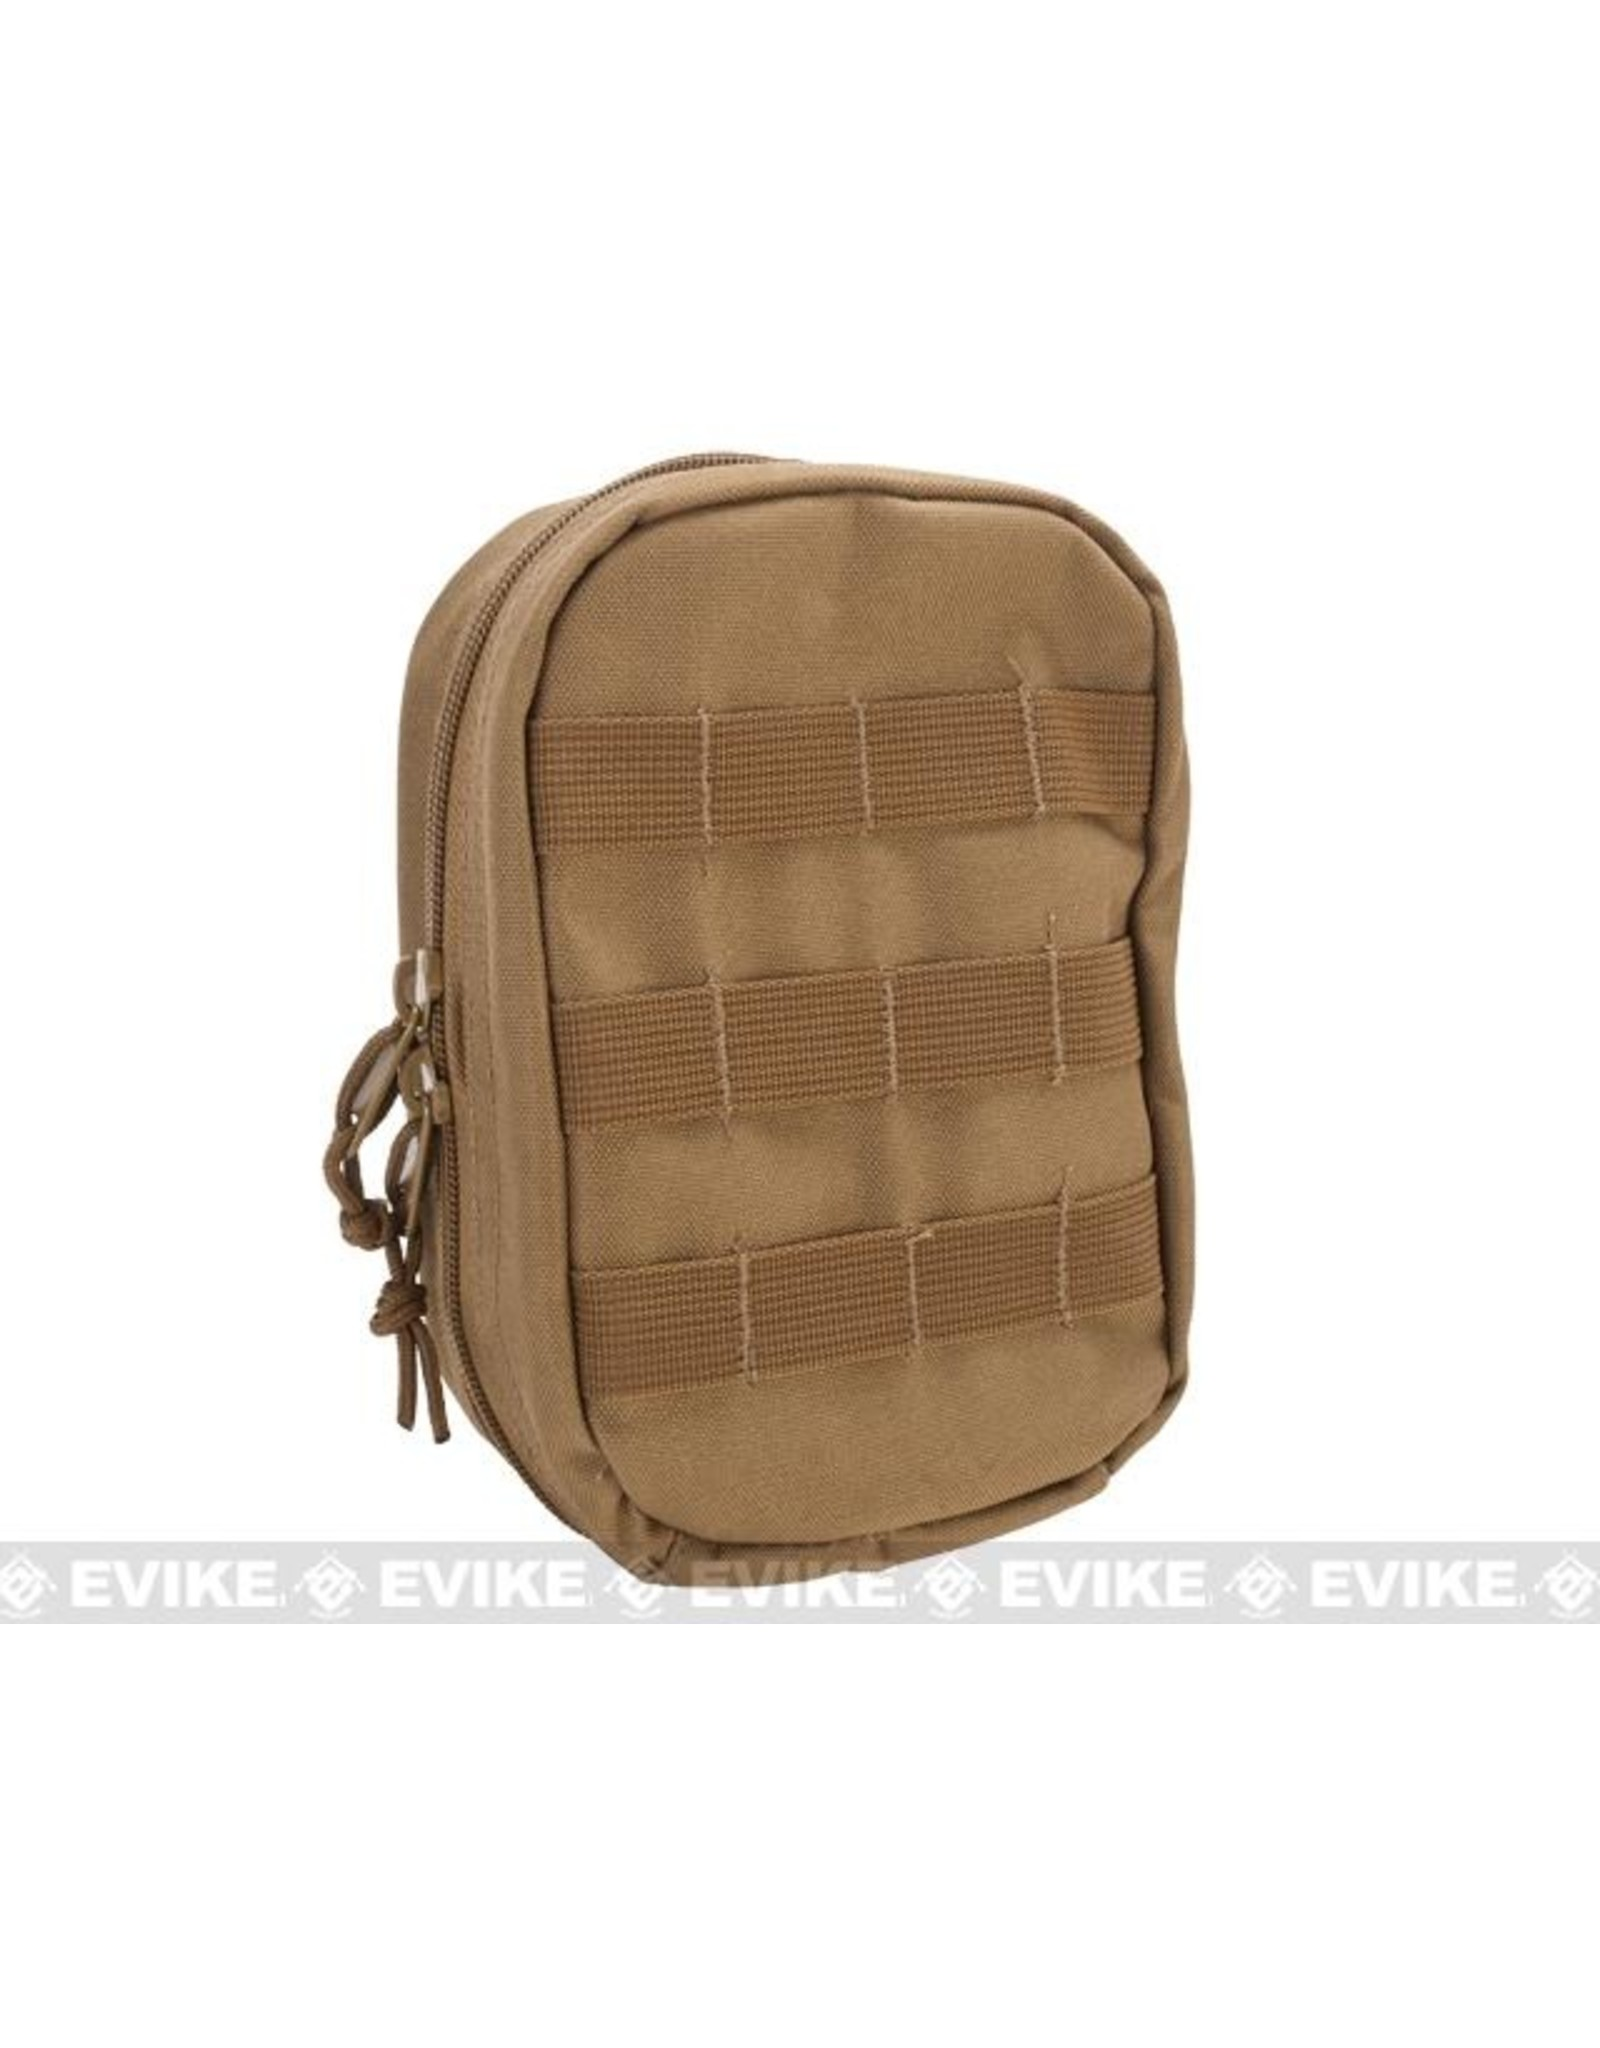 ROTHCO TACTICAL MOLLE FIRST AID KIT